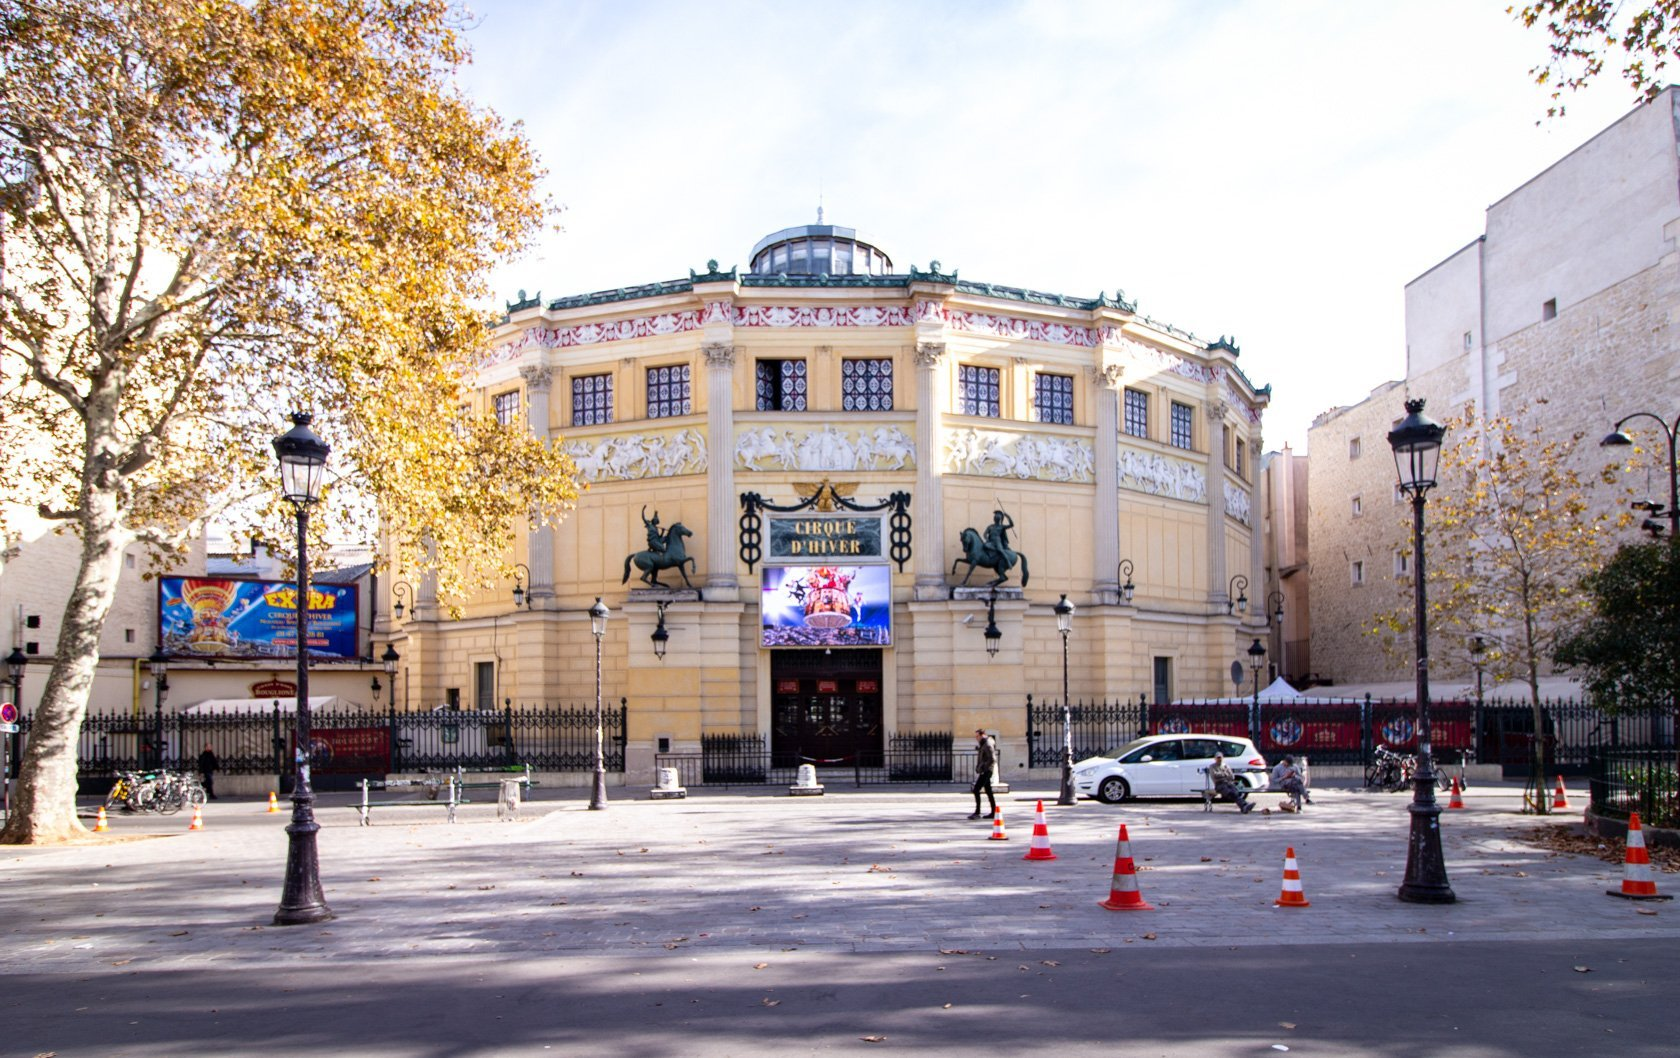 Cirque d'Hiver- A Local's Guide to the 11th Arrondissement